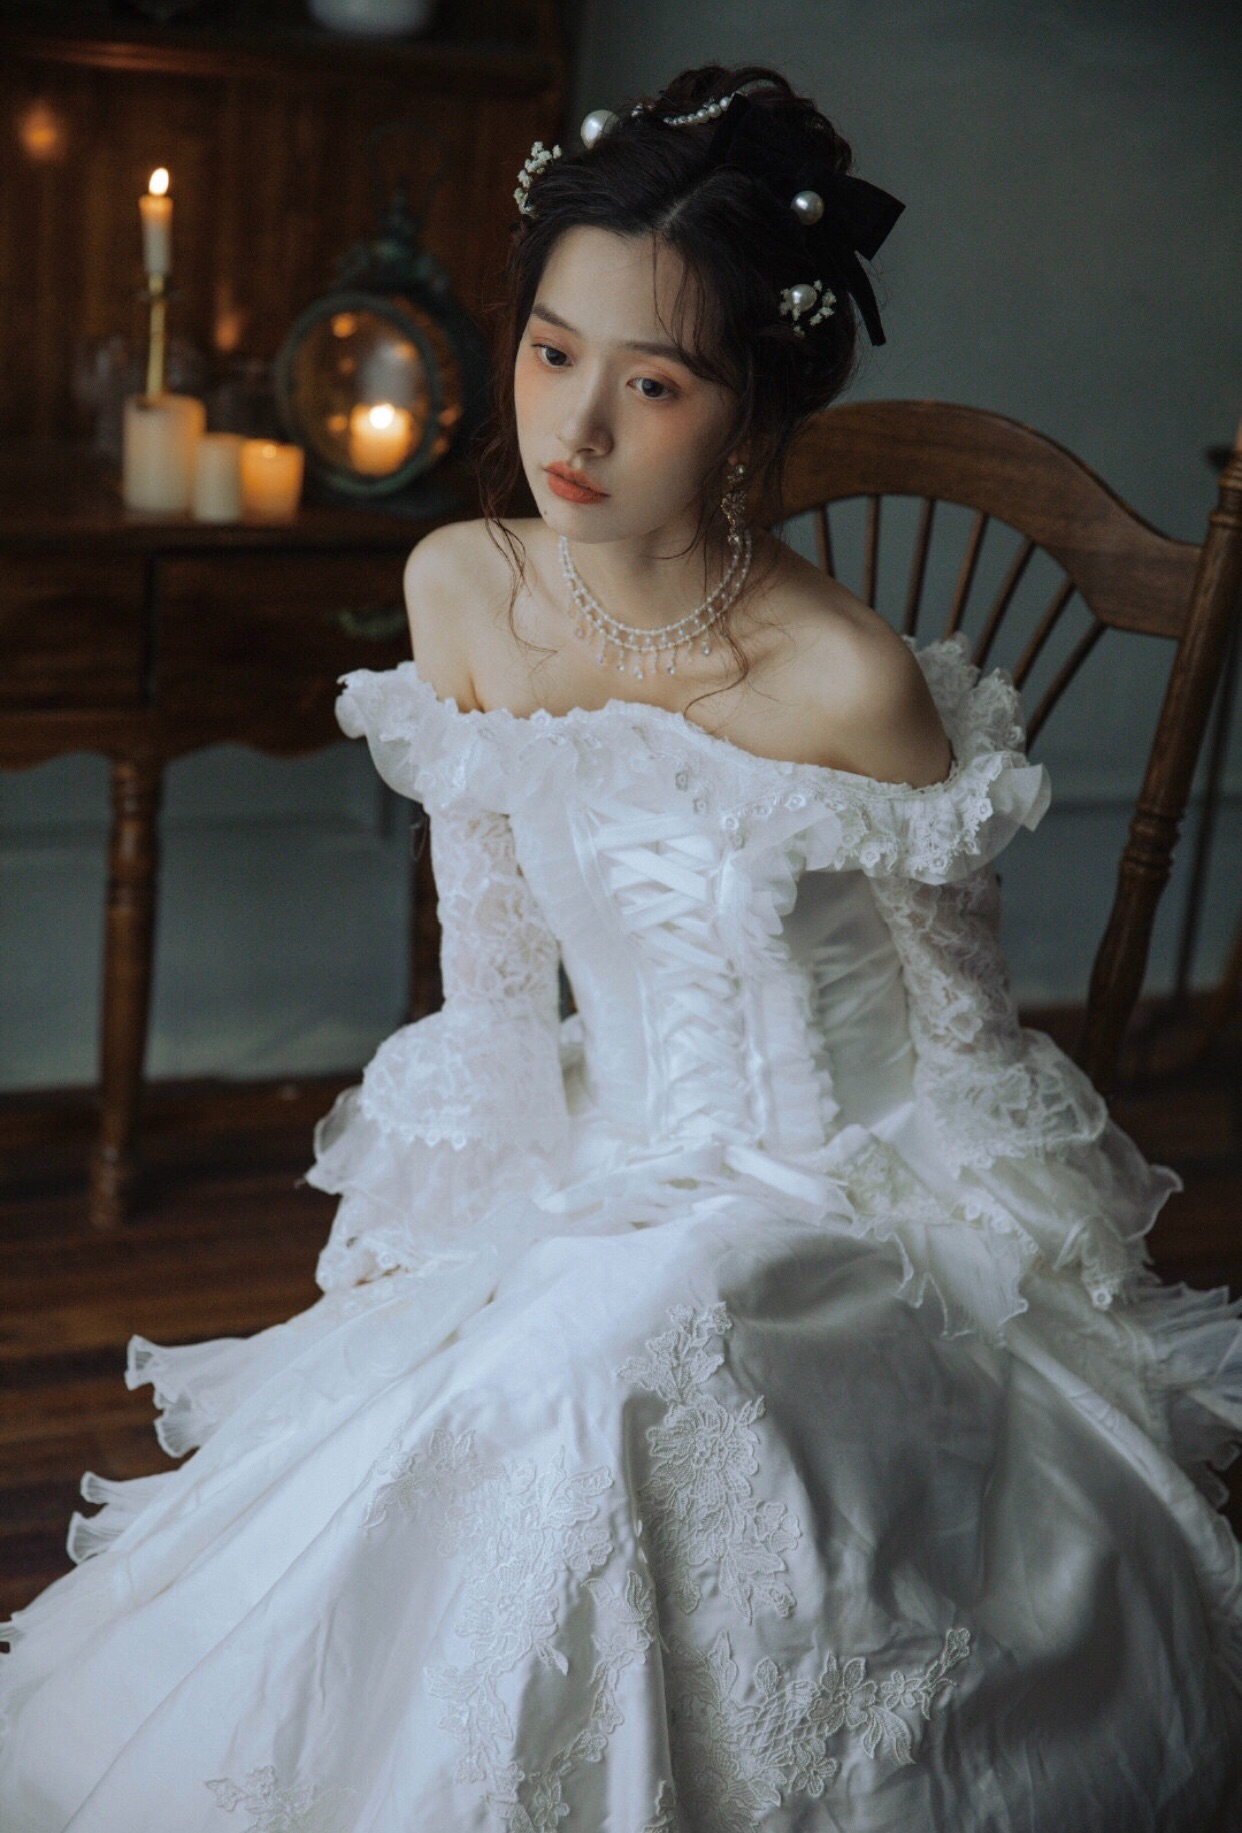 Qingyu antique wedding dress engraved with vintage French court wedding dress with shoulder lace embroidered long sleeves